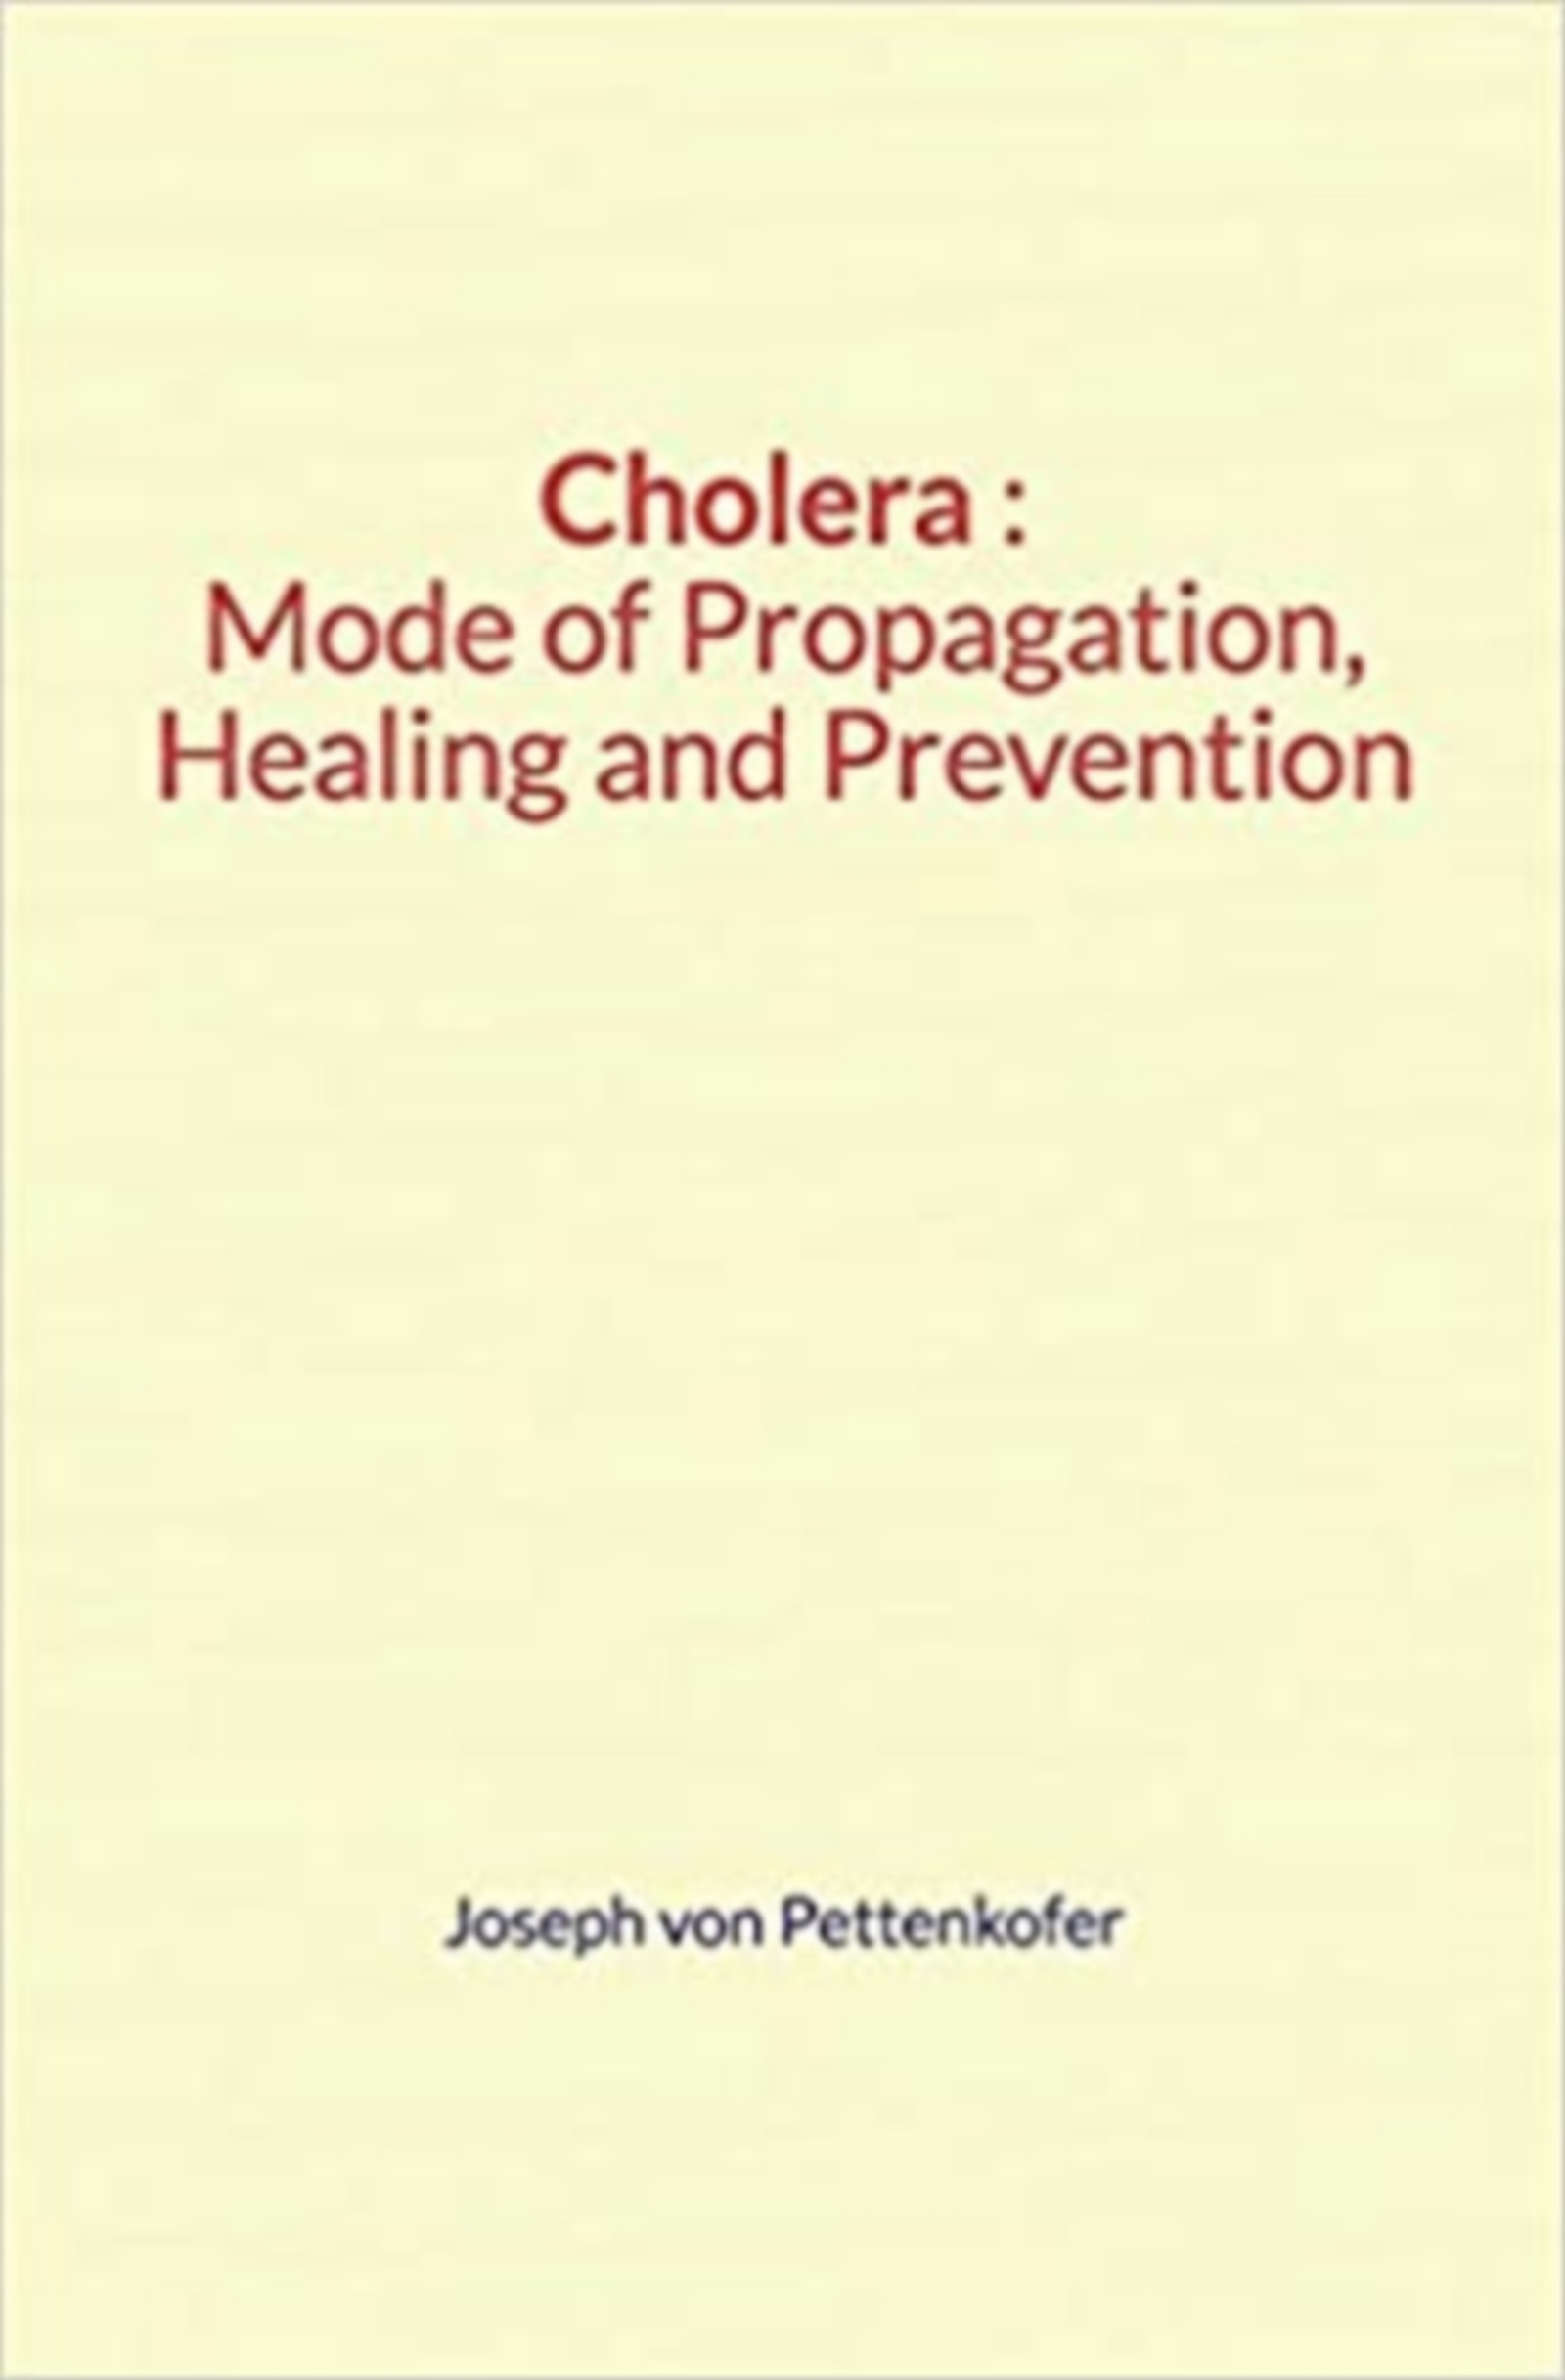 Cholera : Mode of Propagation, Healing and Prevention